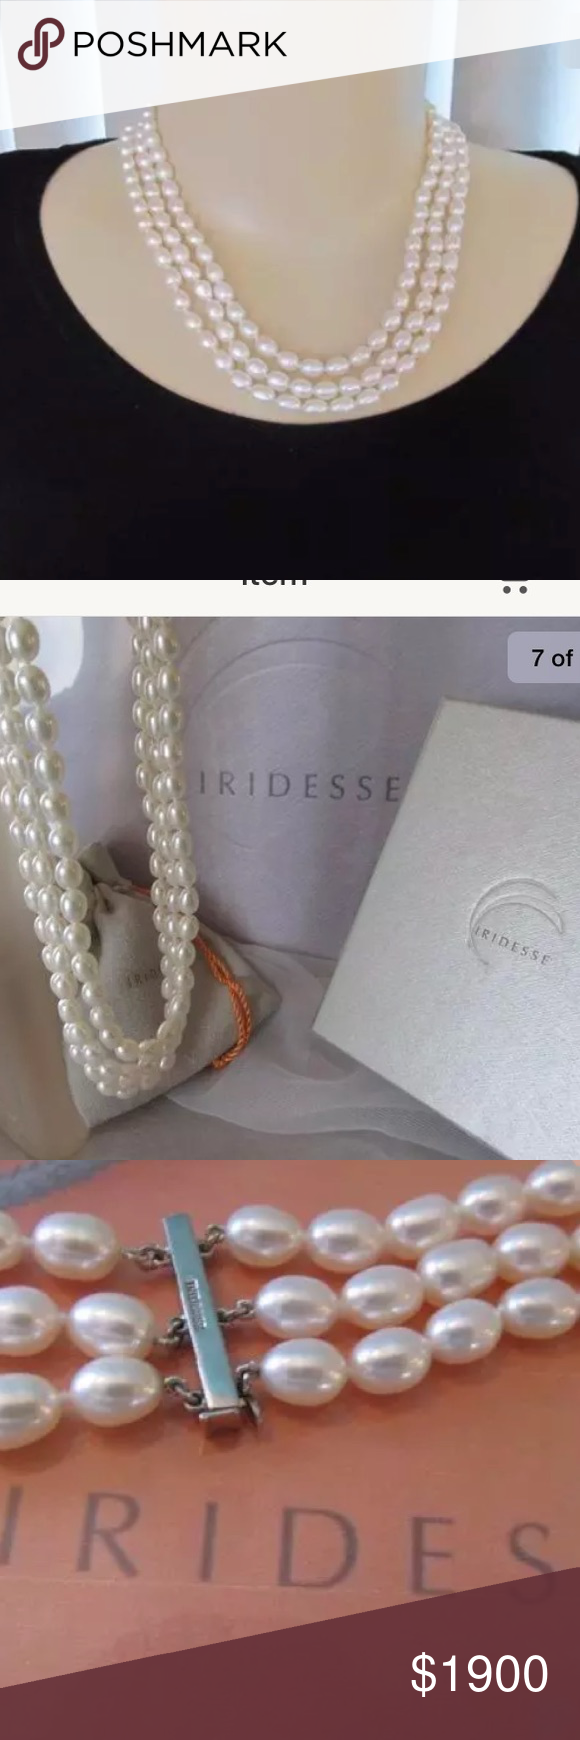 679035415 Tiffany Iridesse Pearl Triple Strand Necklace Tiffany & Co. Iridesse Pearl  Necklace With 925 Sterling Silver Clasp Tiffany & Co. Jewelry Necklaces